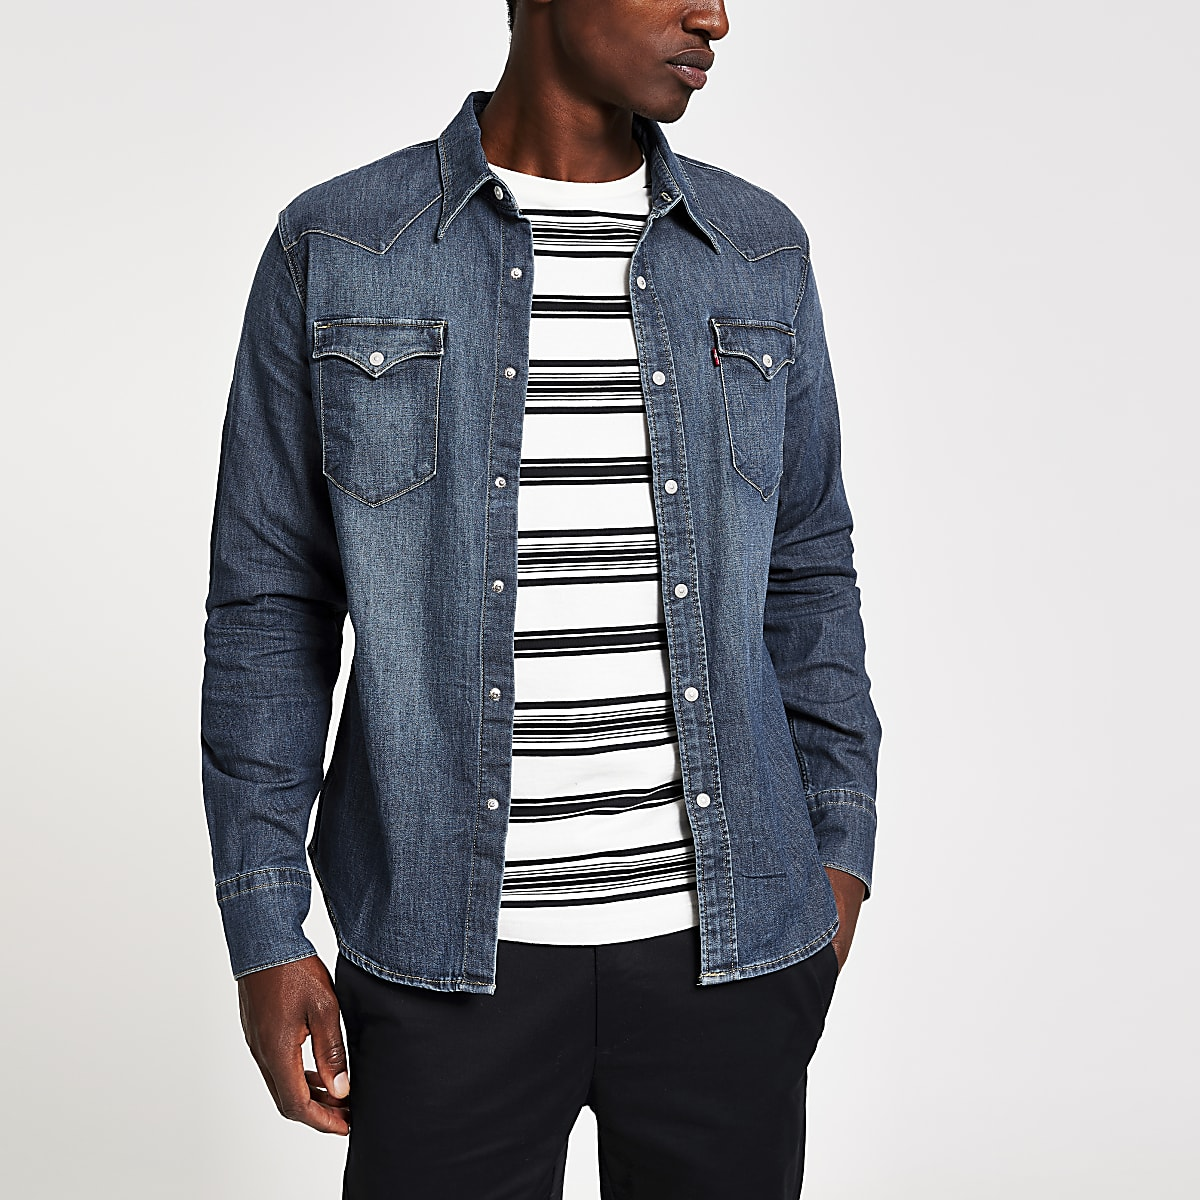 Levi's dark blue regular fit denim shirt